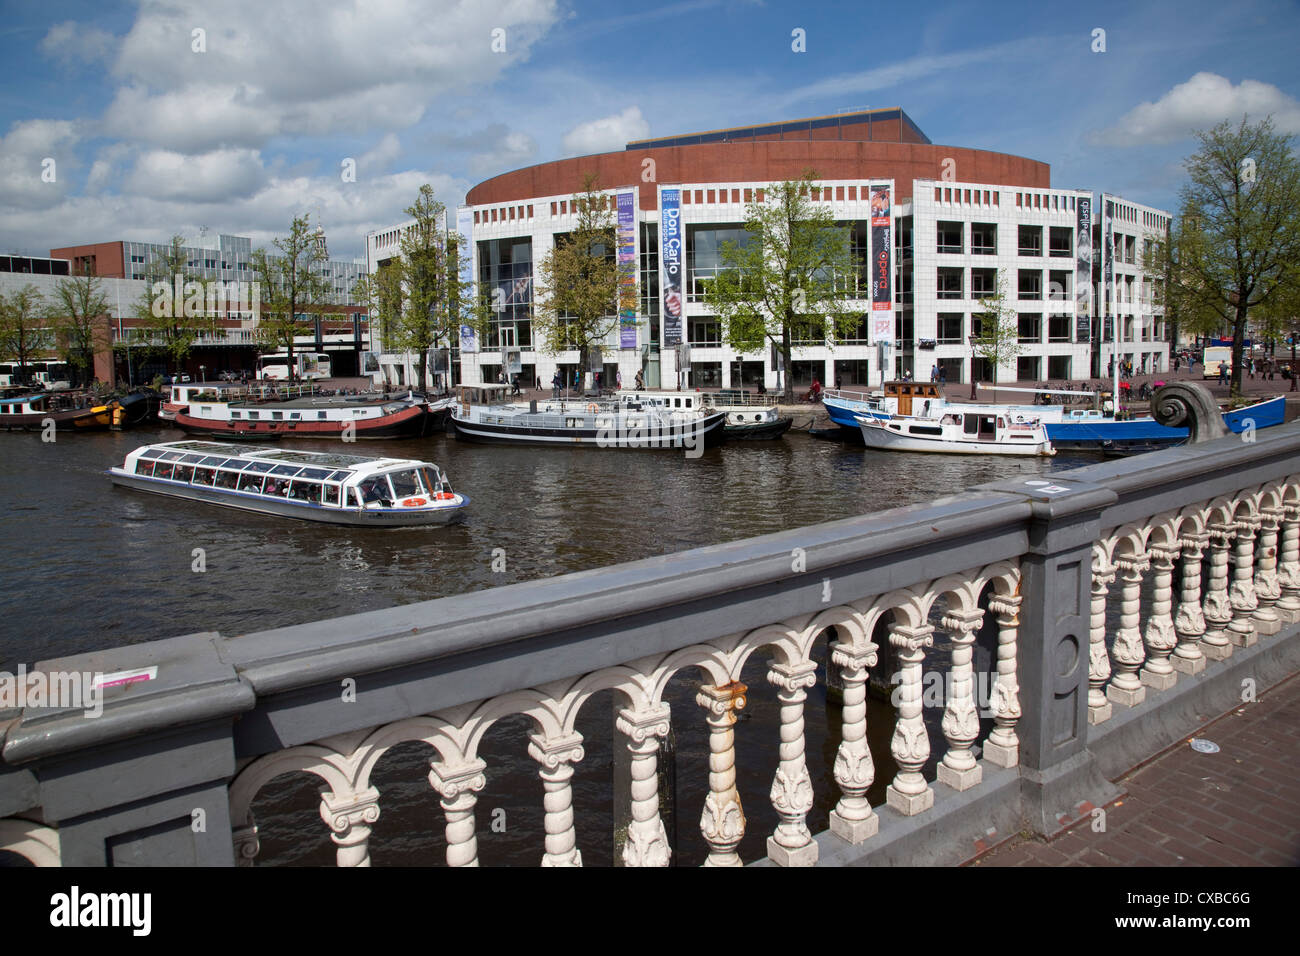 Stadhuis and Music Theatre, Amsterdam, Holland, Europe Stock Photo - Alamy